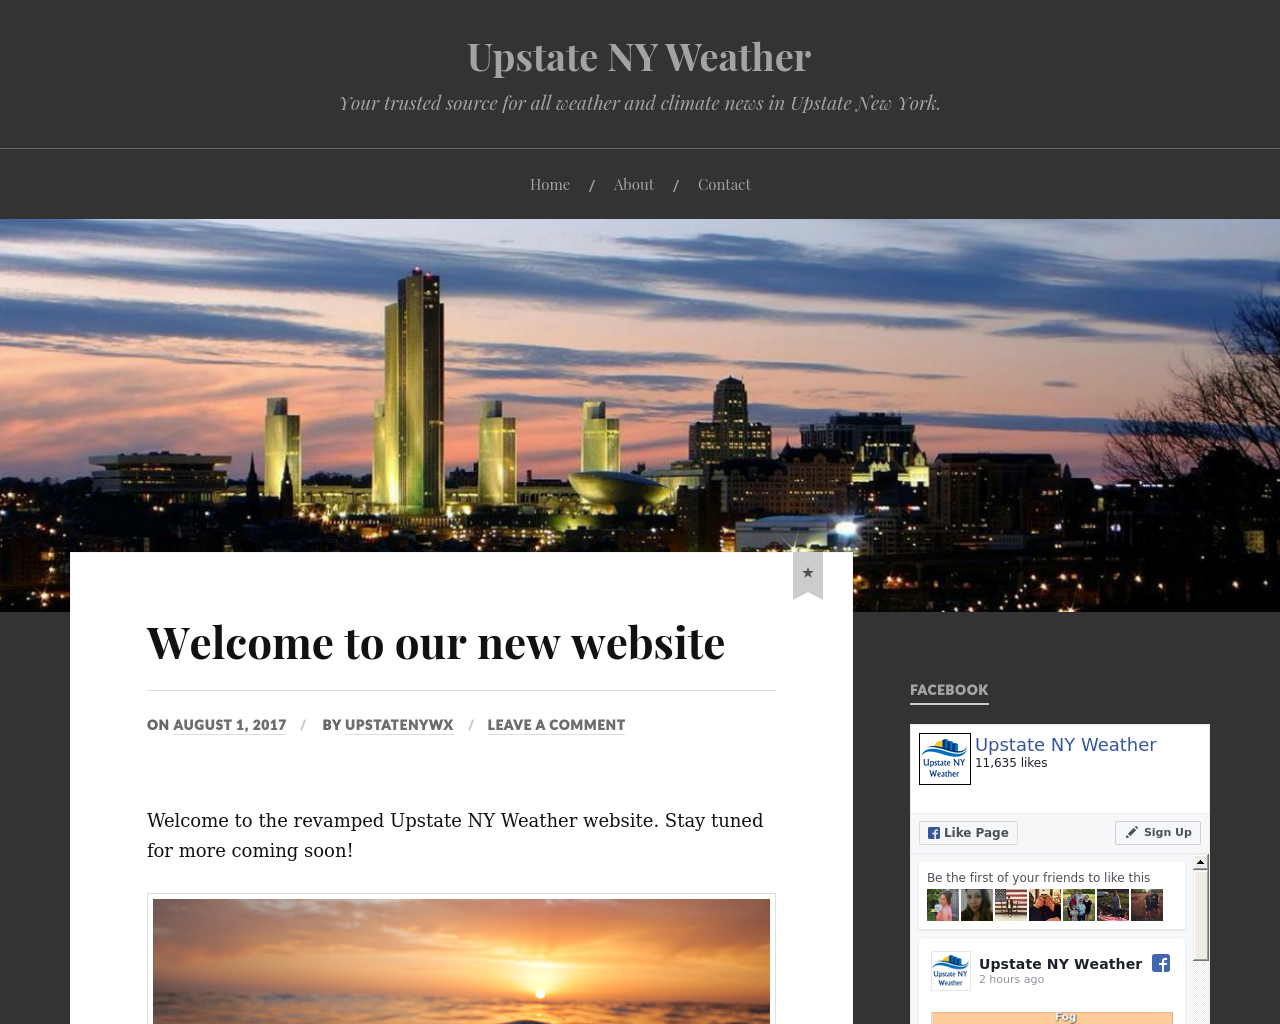 Upstate-NY-Weather-Advertising-Reviews-Pricing